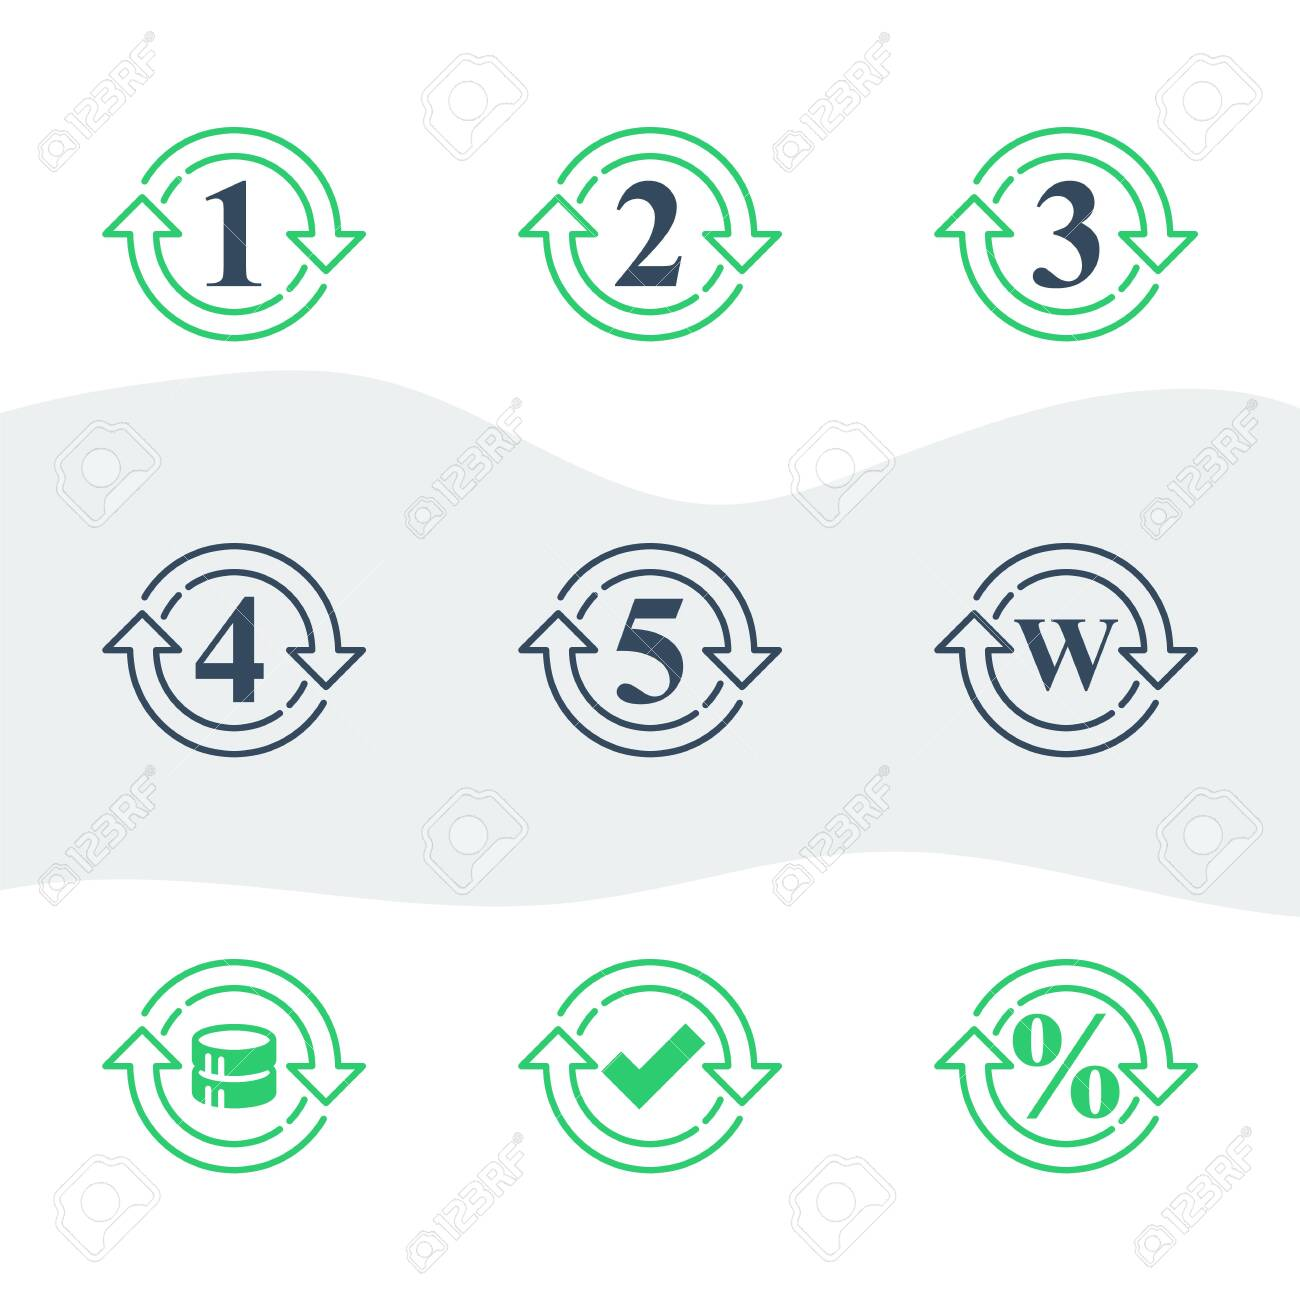 One or five year warranty sign, number two in circle arrow, round three symbol, durable product, durability guarantee, period cycle, upgrade level, vector line icon set - 144943748